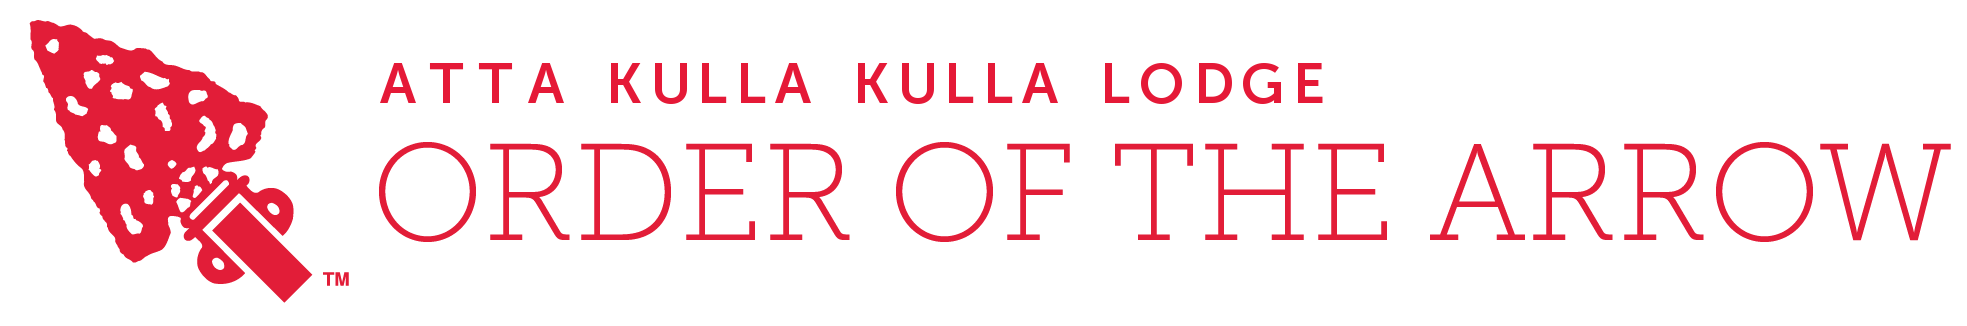 Atta Kulla Kulla Lodge